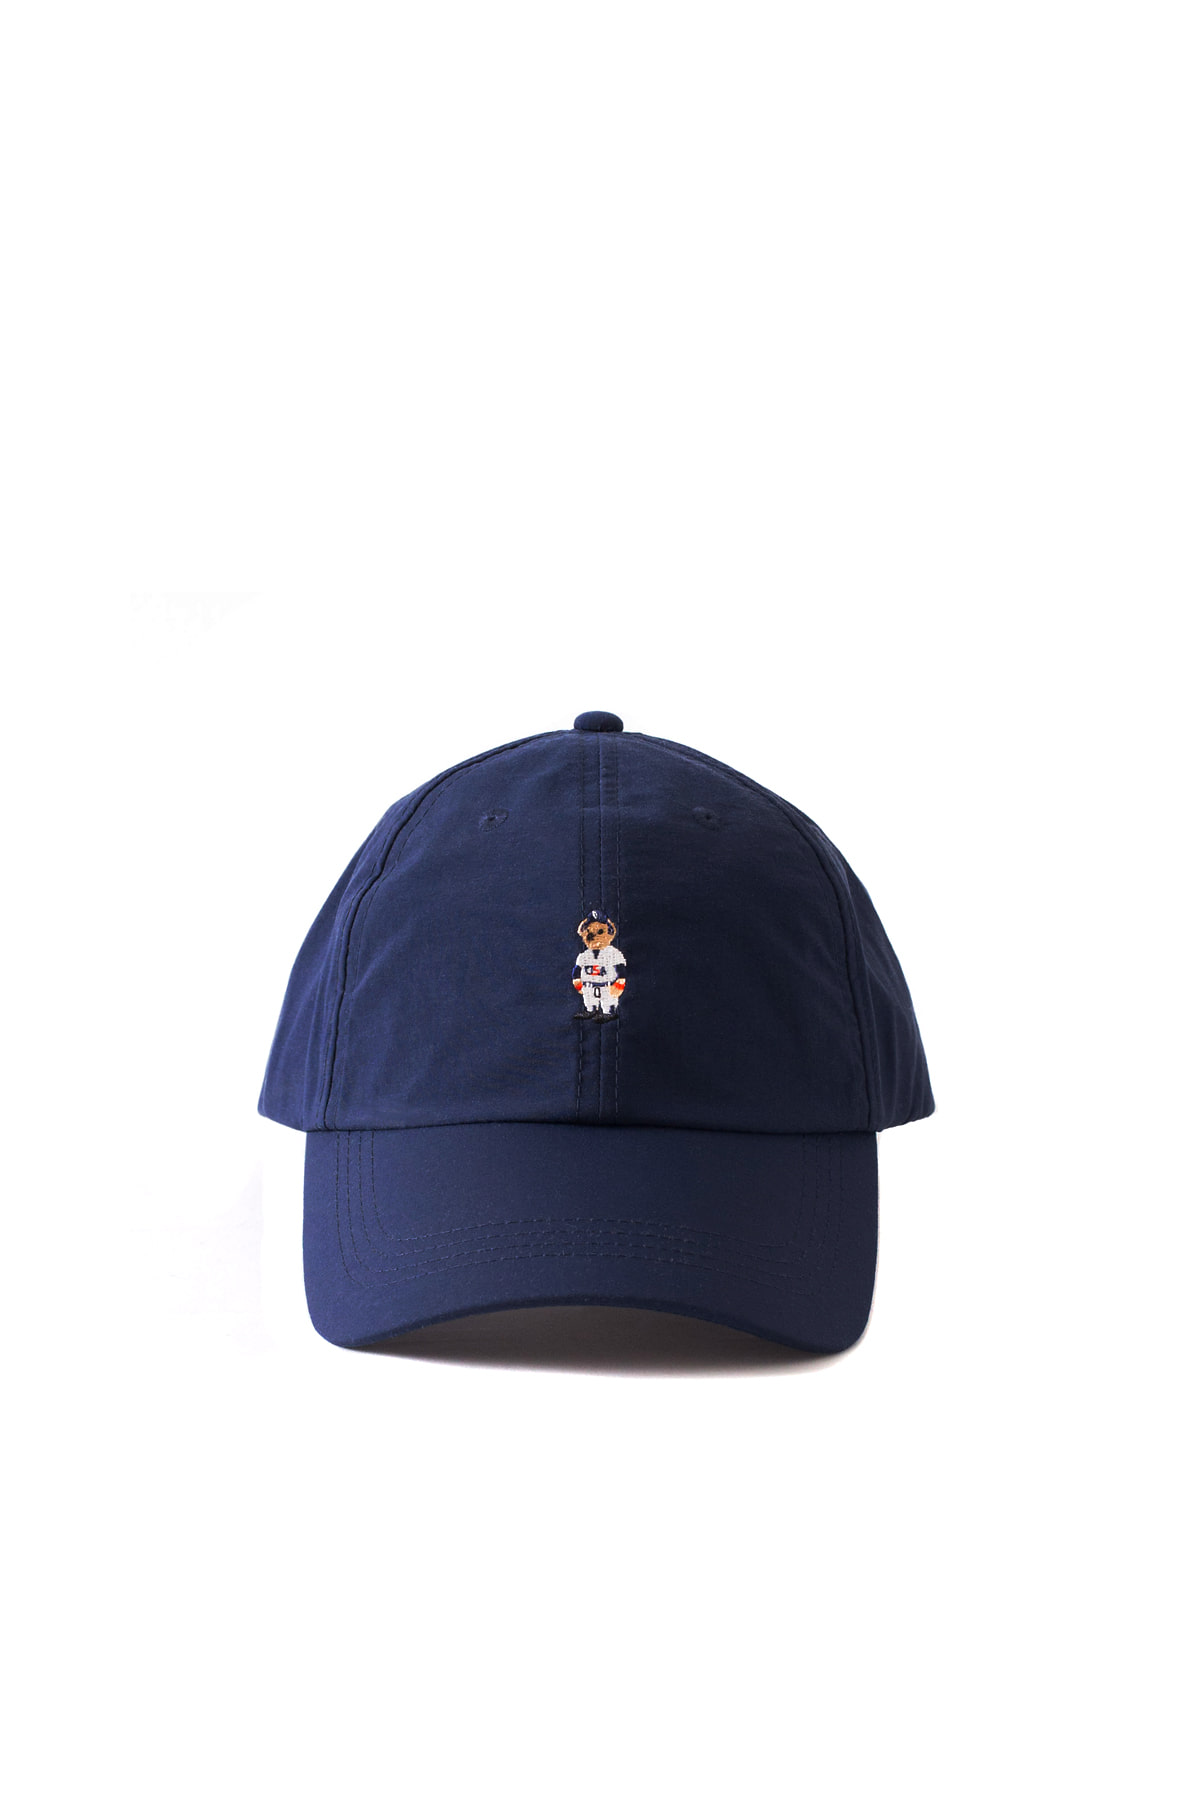 Infielder Design : Bear Cap (Navy)